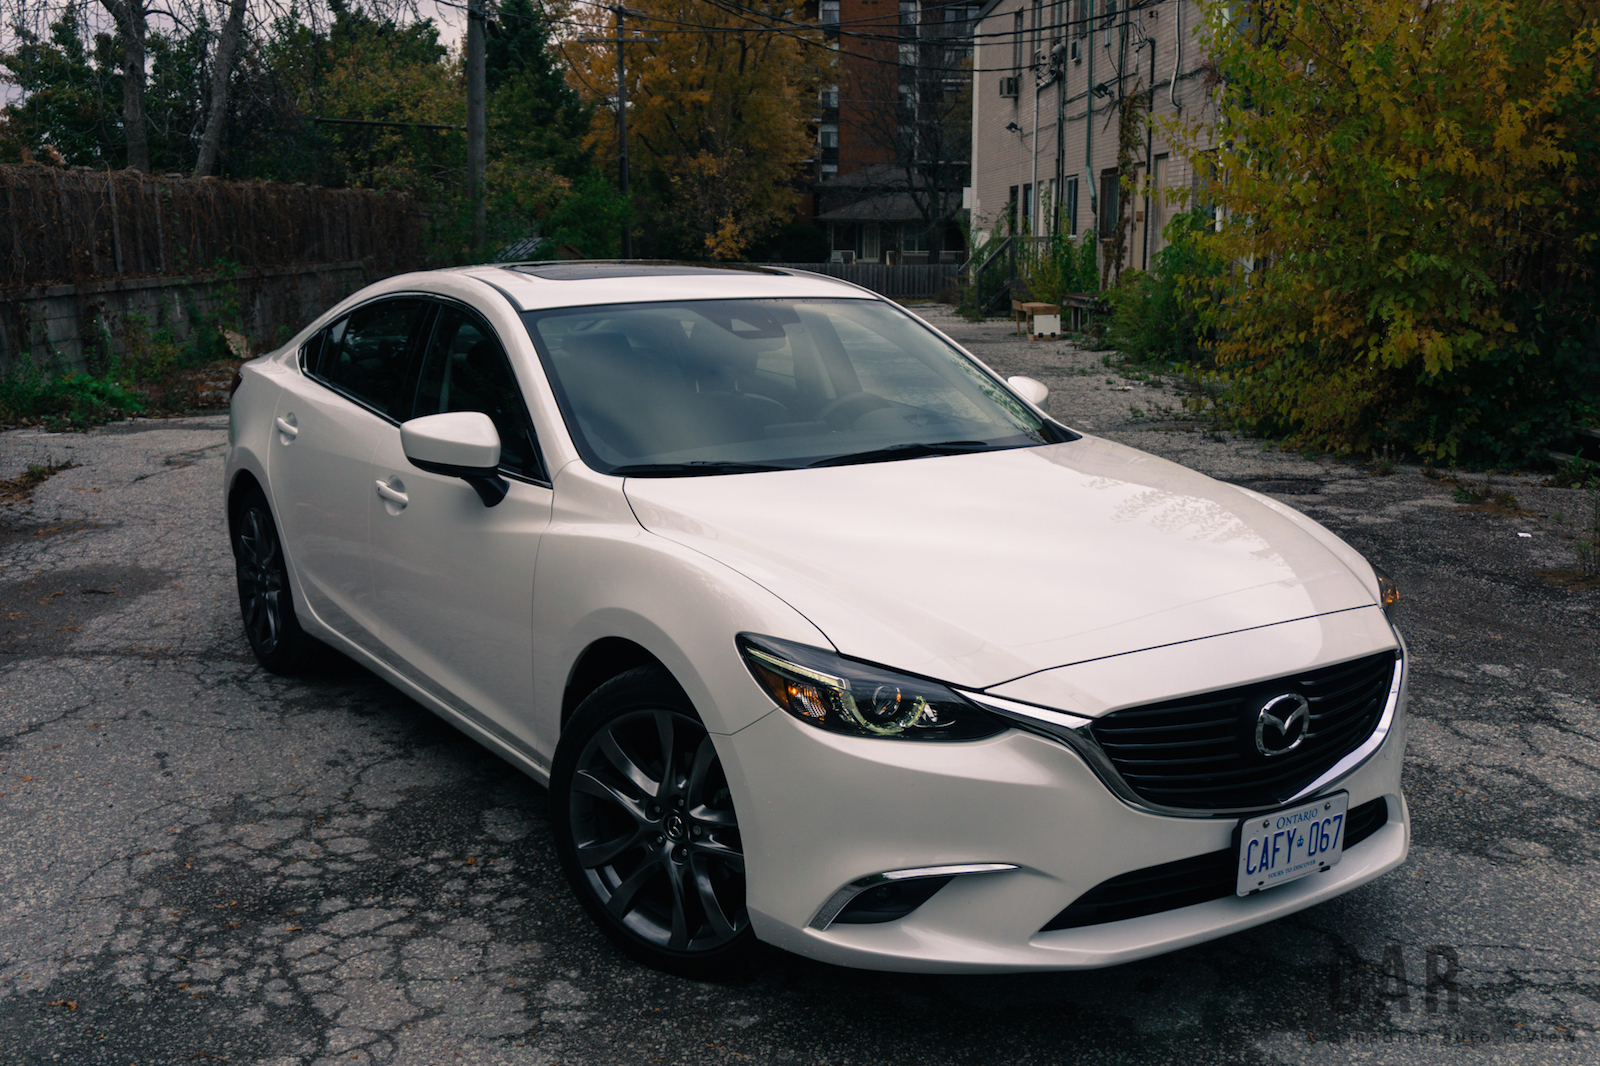 Mazda 2 Gt >> Road Trip: New York City in a 2017 Mazda6 GT | Canadian Auto Review